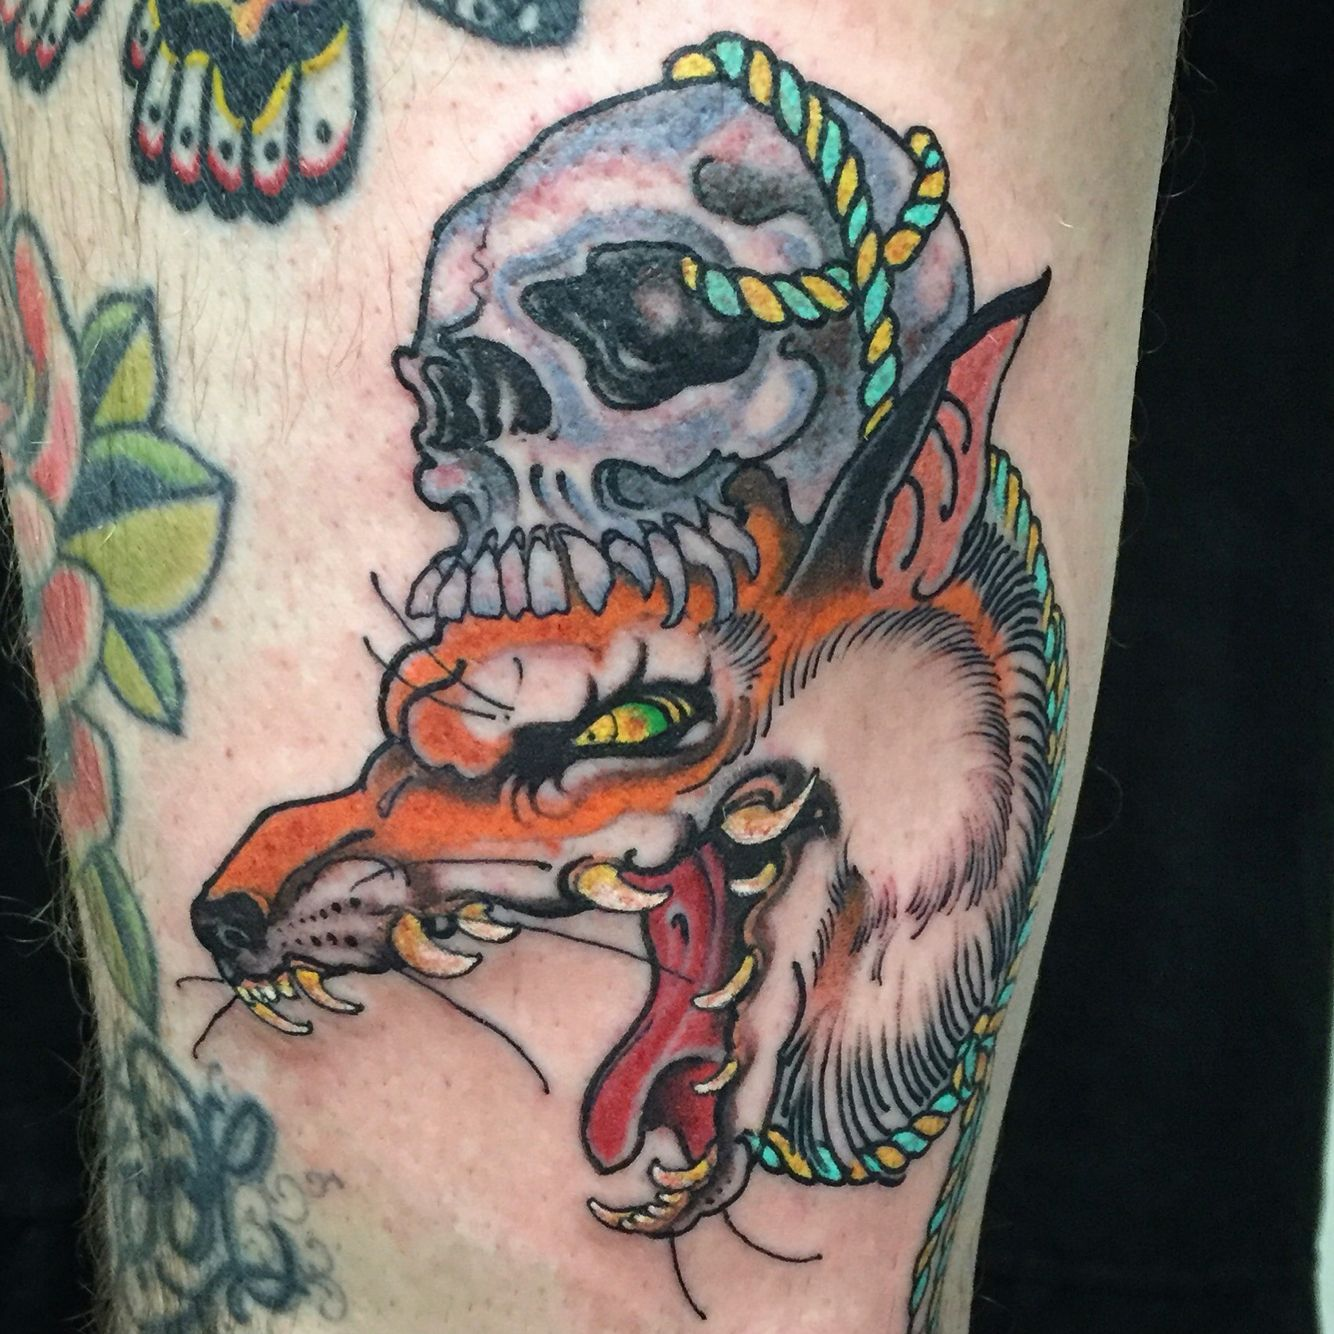 Traditional Kitsune Tattoo: #larascotton #larascottontattoos #kitsune #nyc